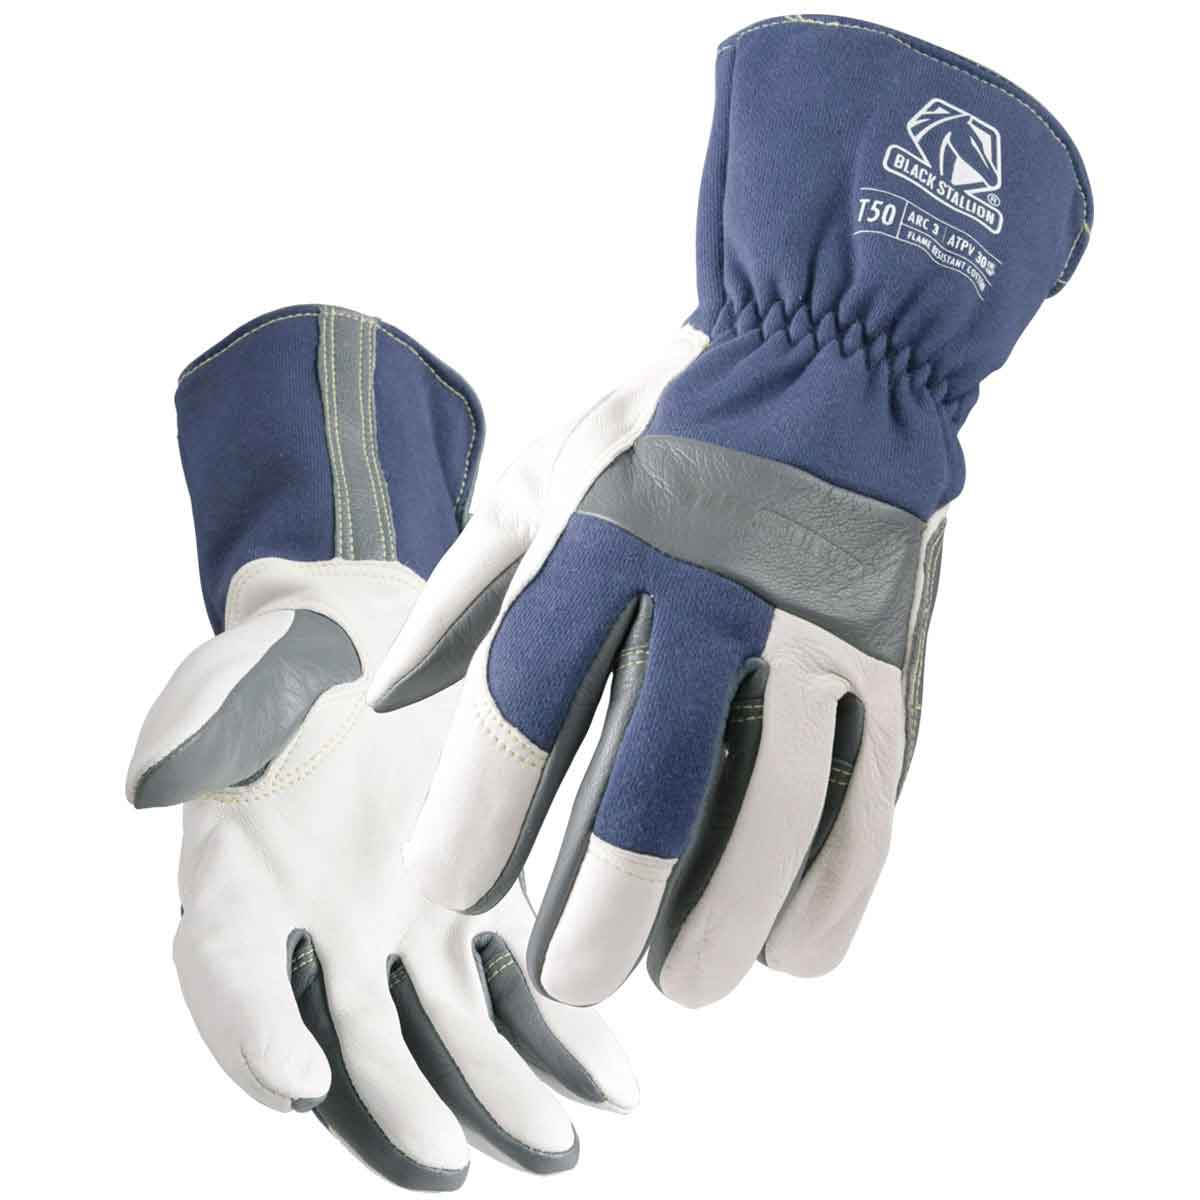 Black Stallion TIGster T50 Premium Grain Goatskin & FR Cotton TIG Welding Glove, Large